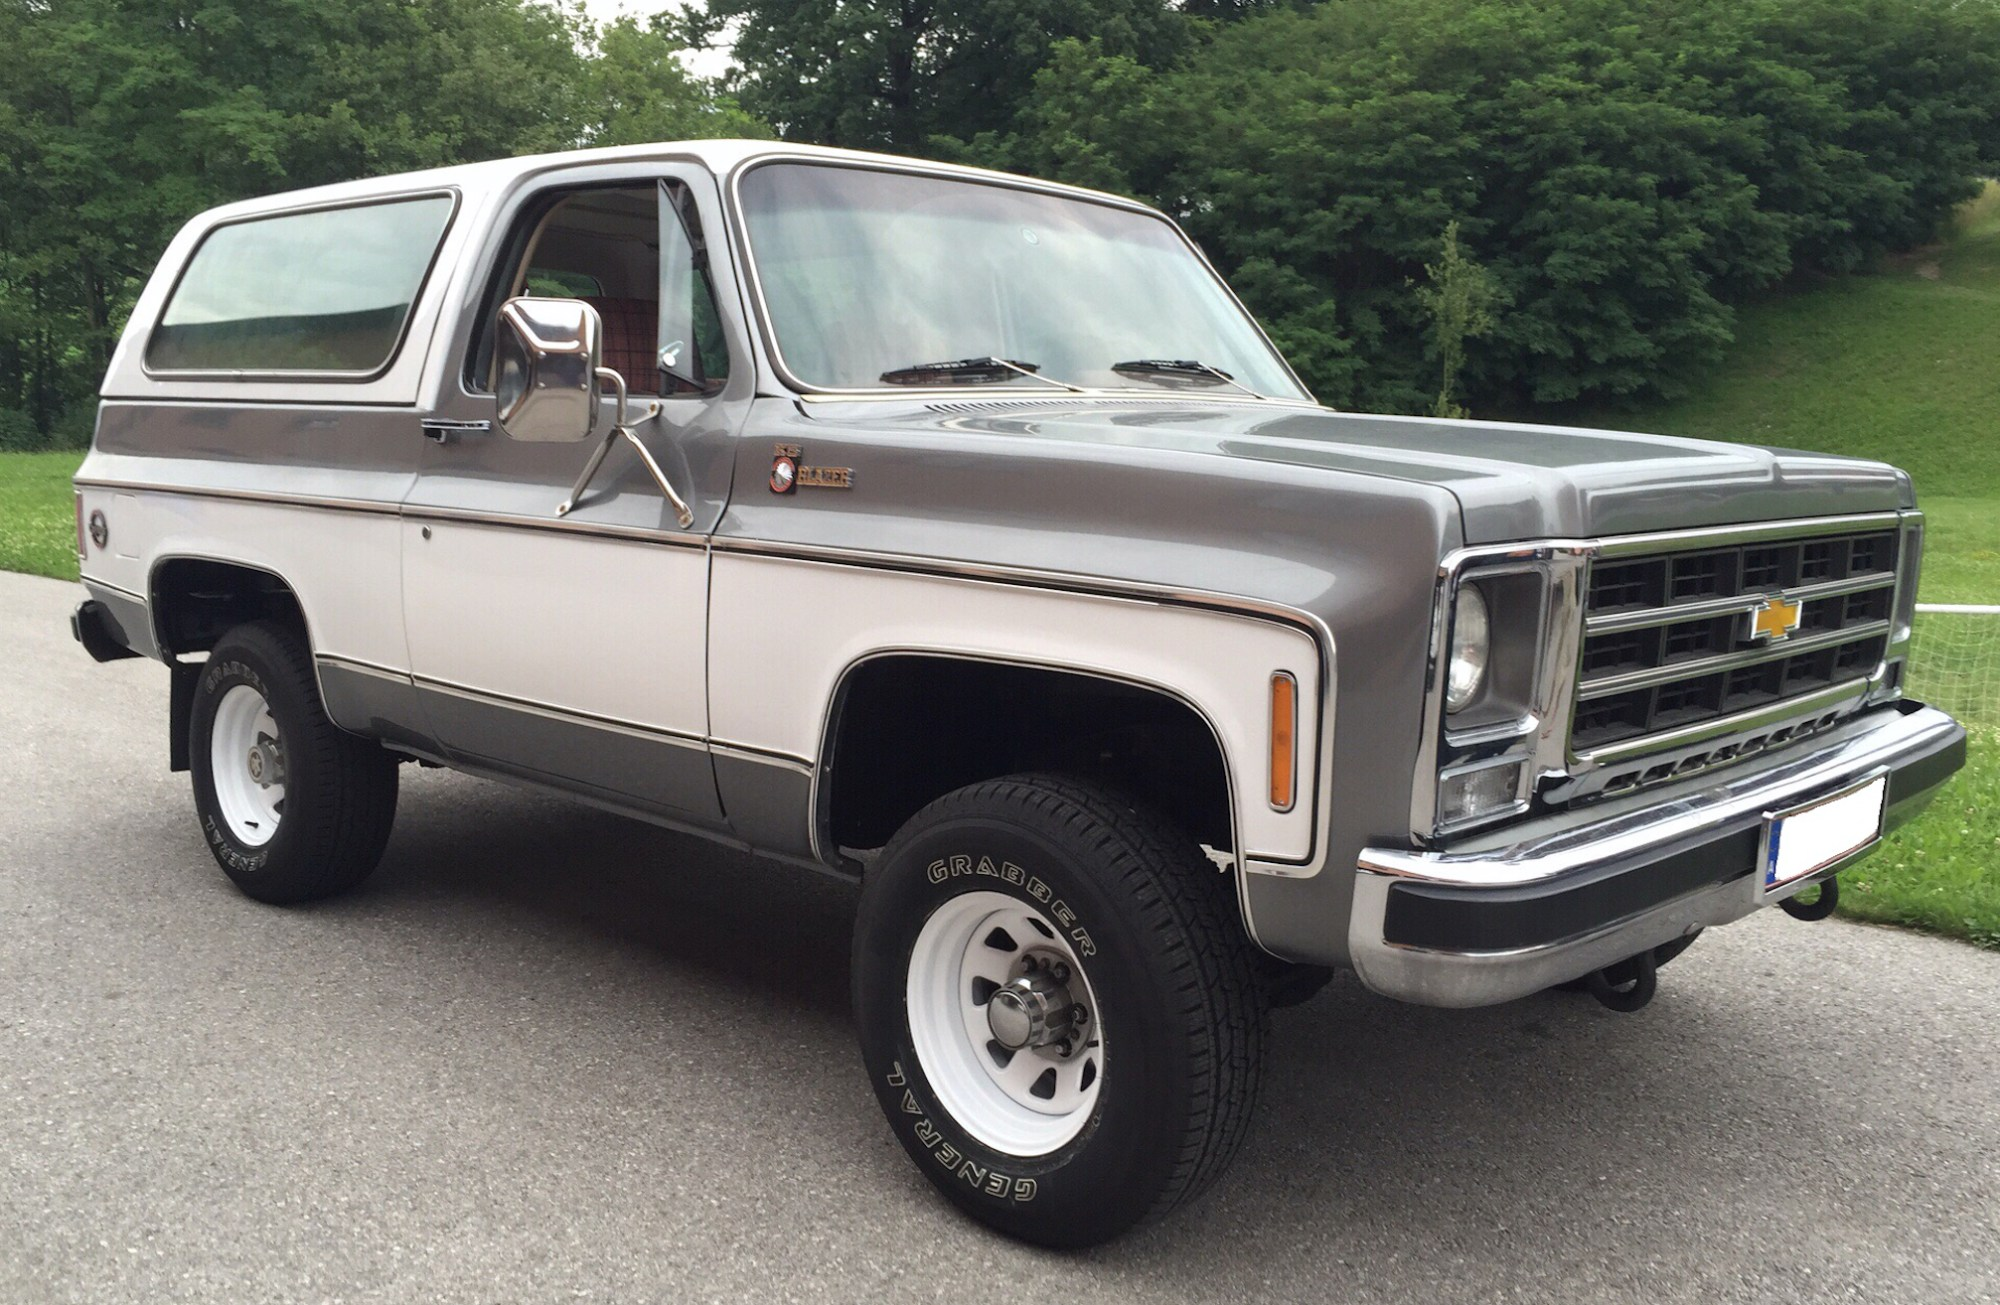 hight resolution of a 1979 chevy blazer photo by by 79k5driver cc by sa 4 0